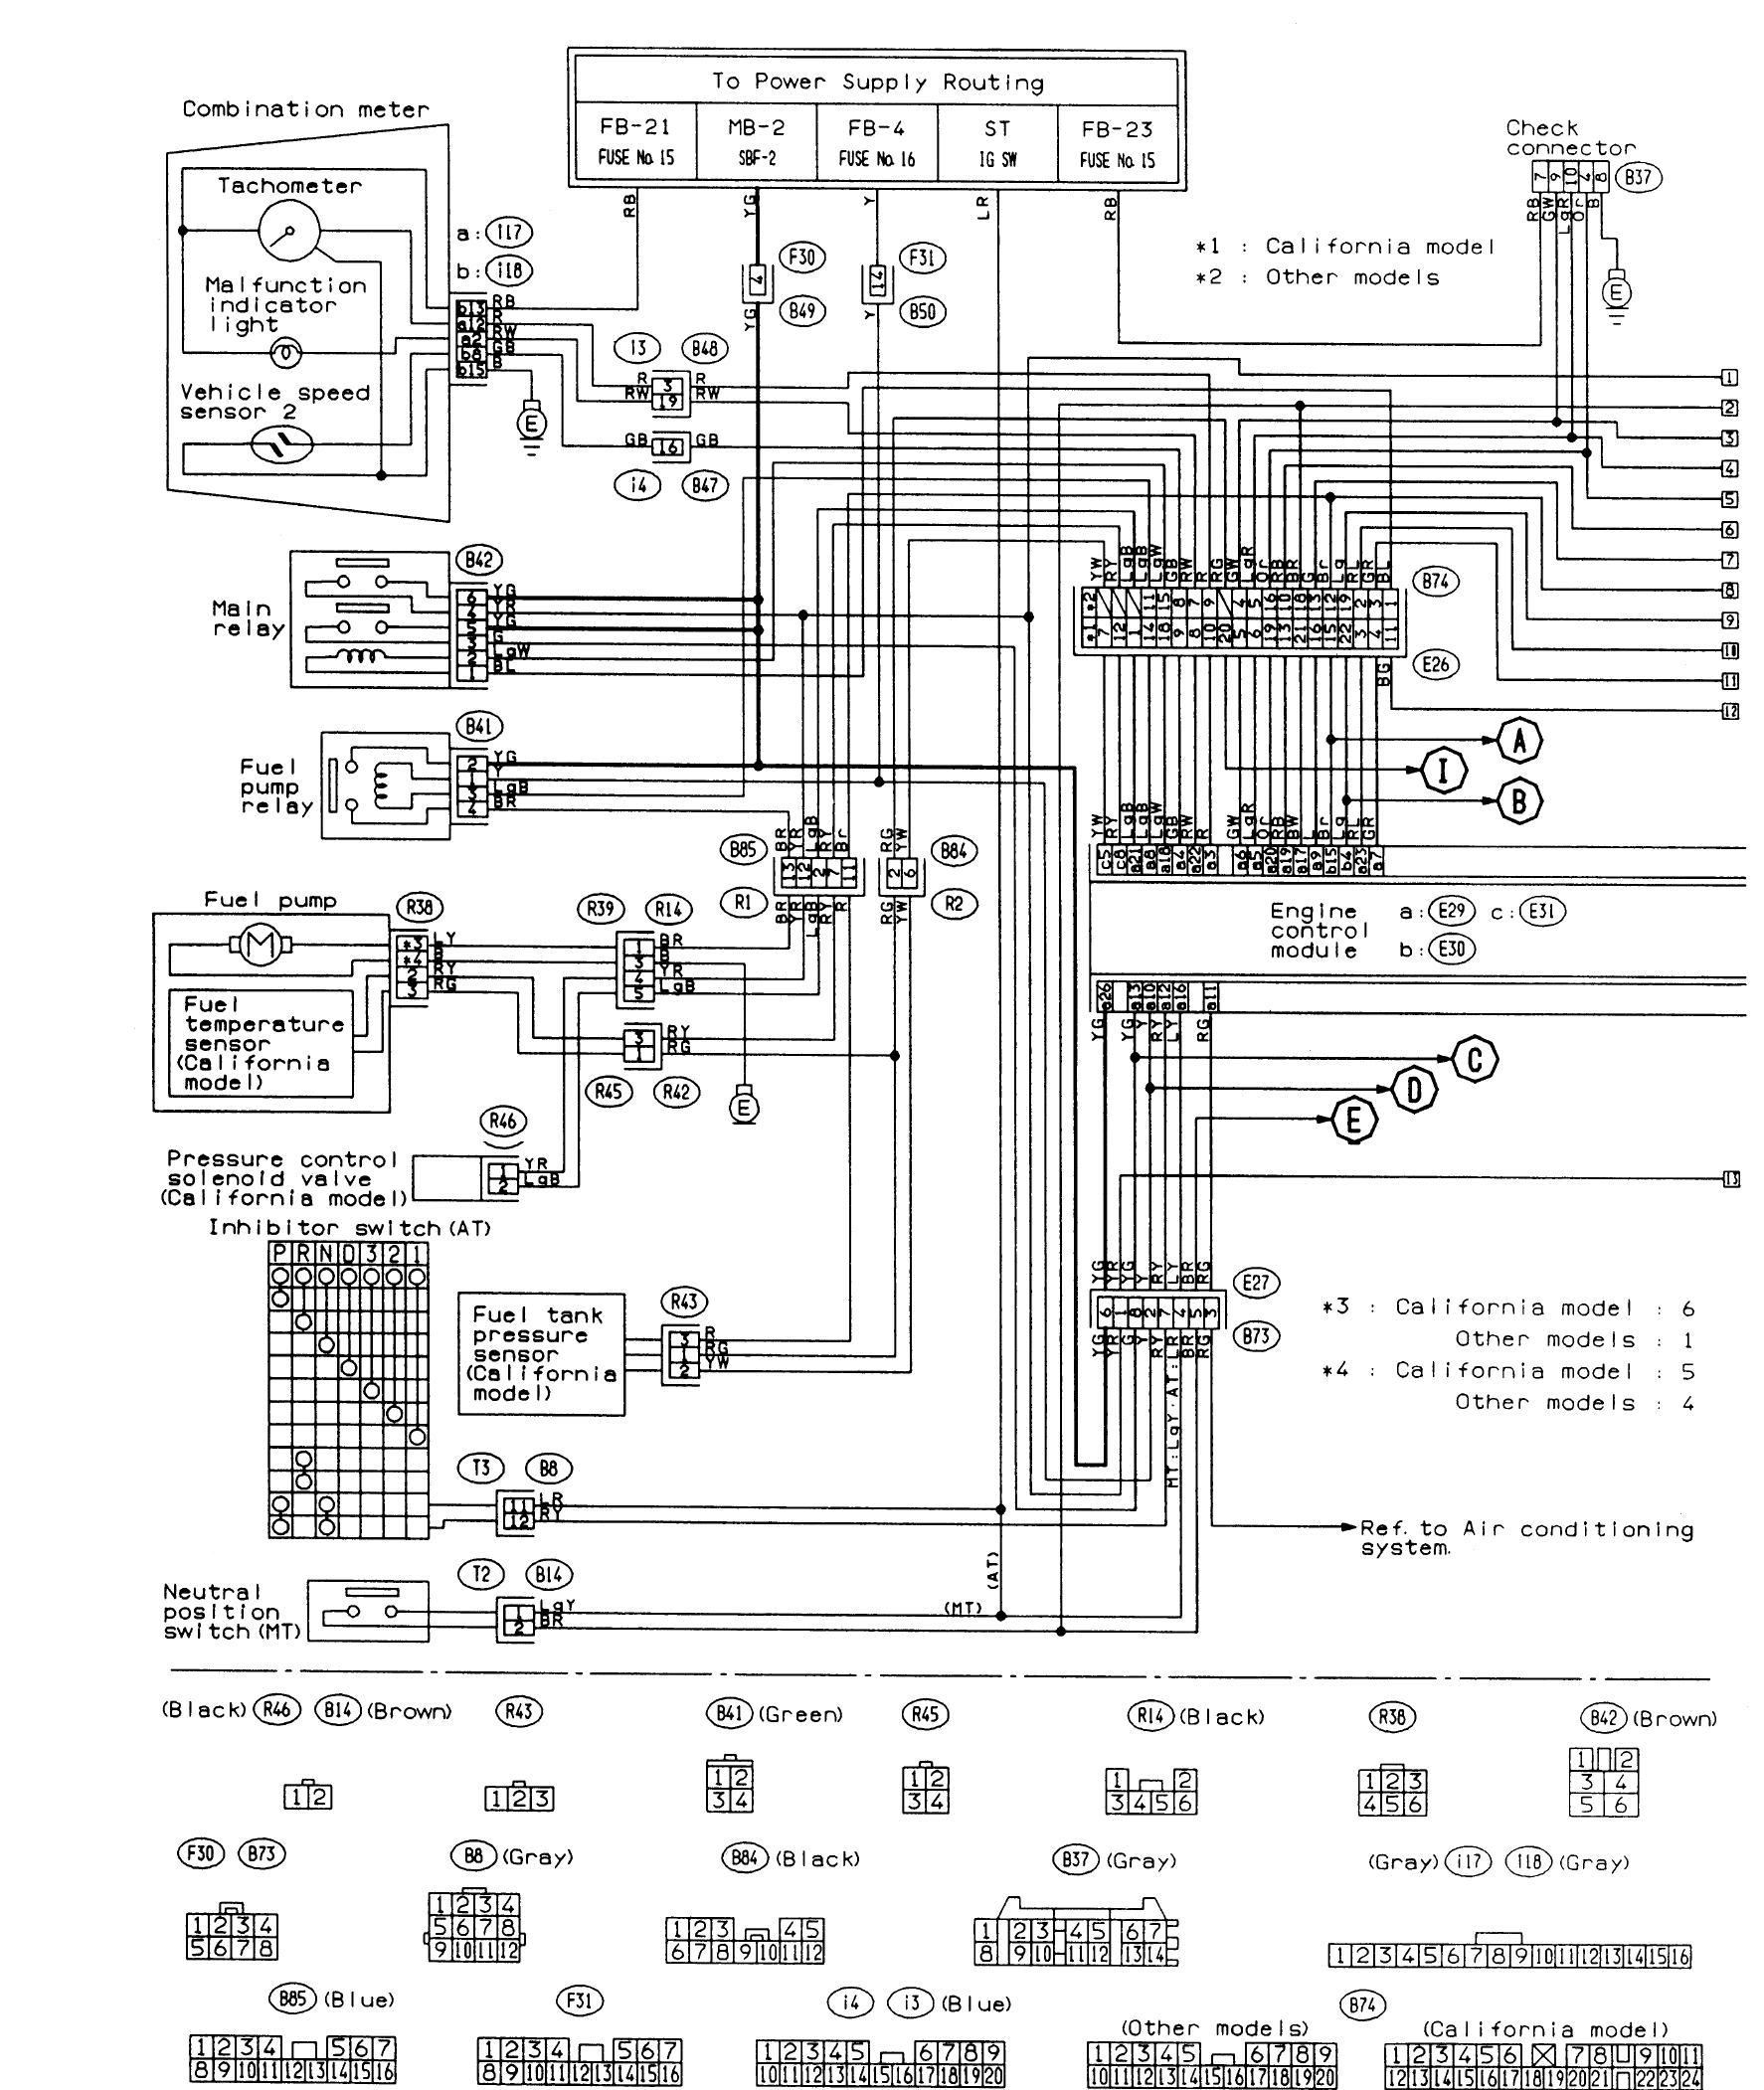 subaru ecu wiring diagram FUSlrCX wiring diagram for 2013 subaru outback radios readingrat net 1998 subaru impreza wiring diagram at crackthecode.co